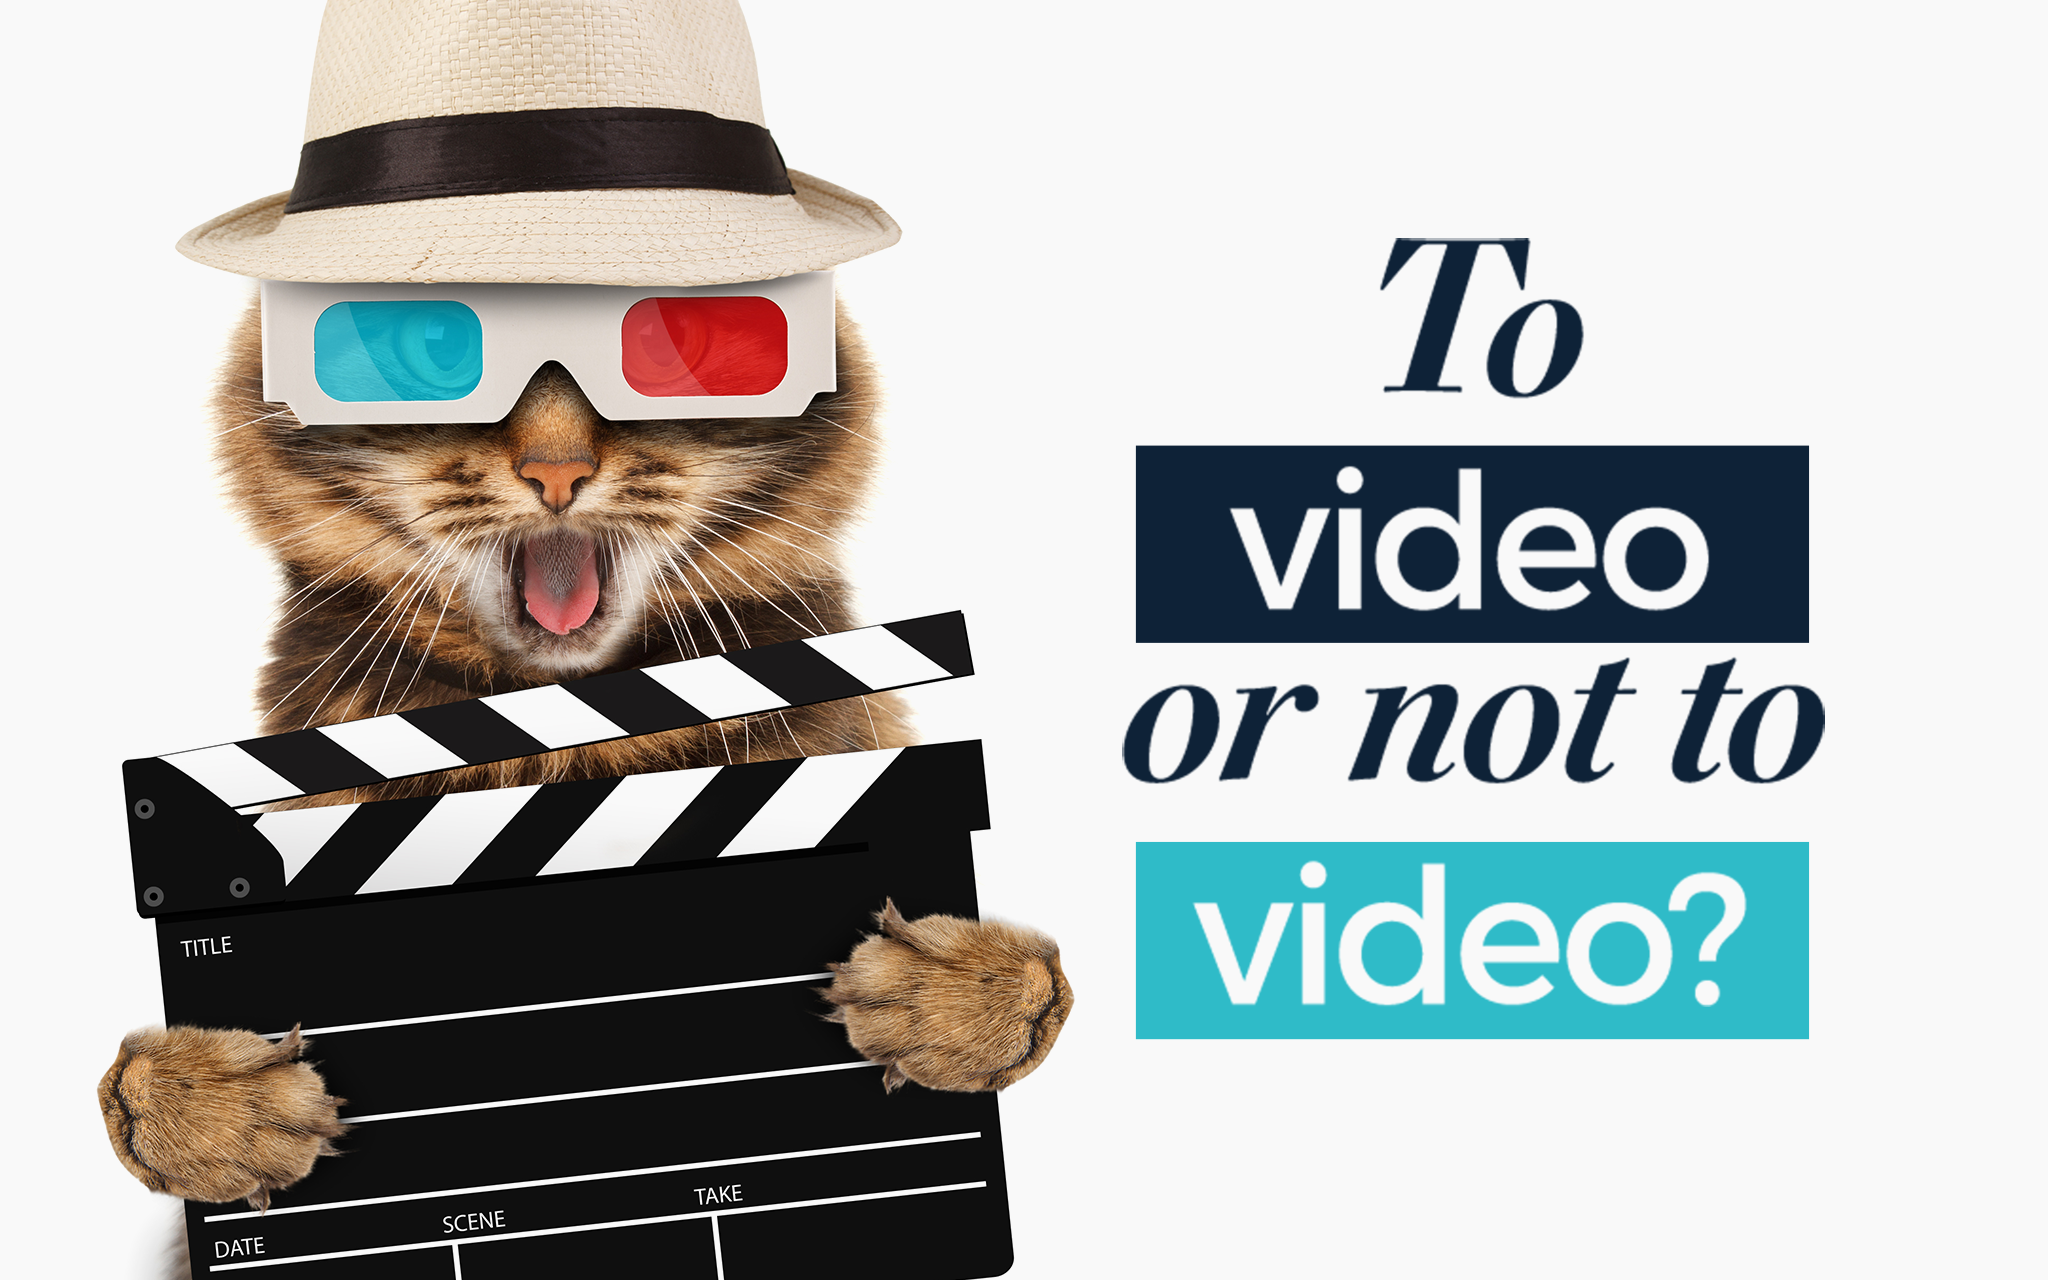 To video or not to video – that is the question?